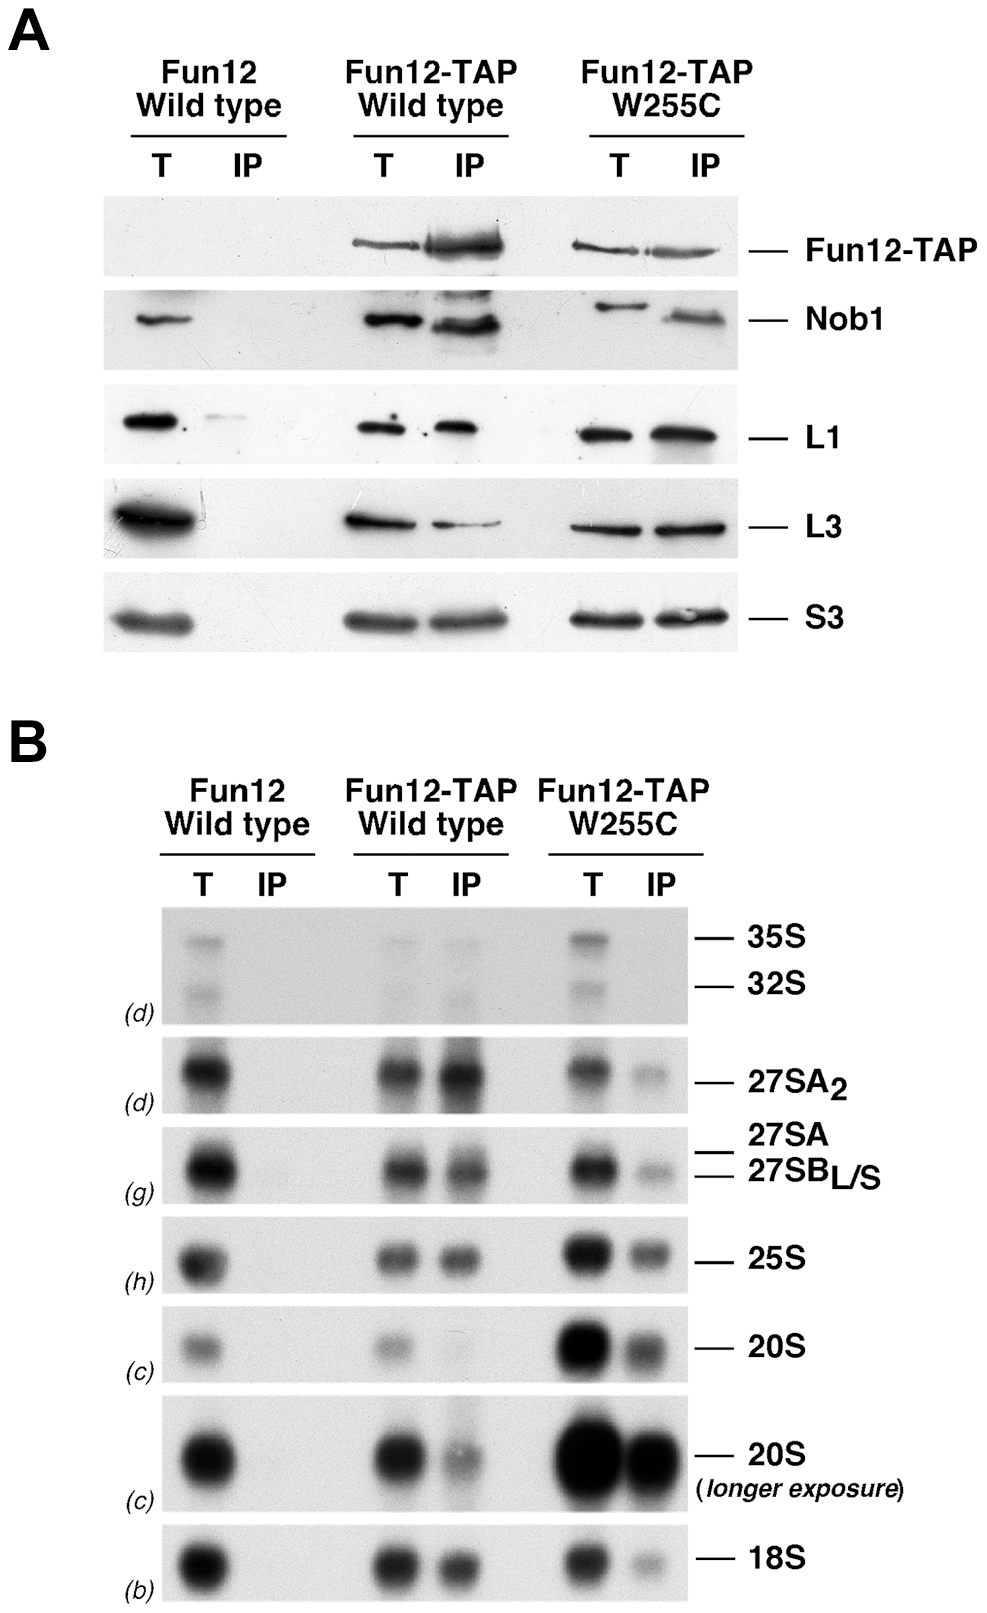 The <i>rpl3</i>[W255C] mutation does not significantly impair the association of Fun12 to pre-40S ribosomal particles and mature 60S ribosomal subunits.